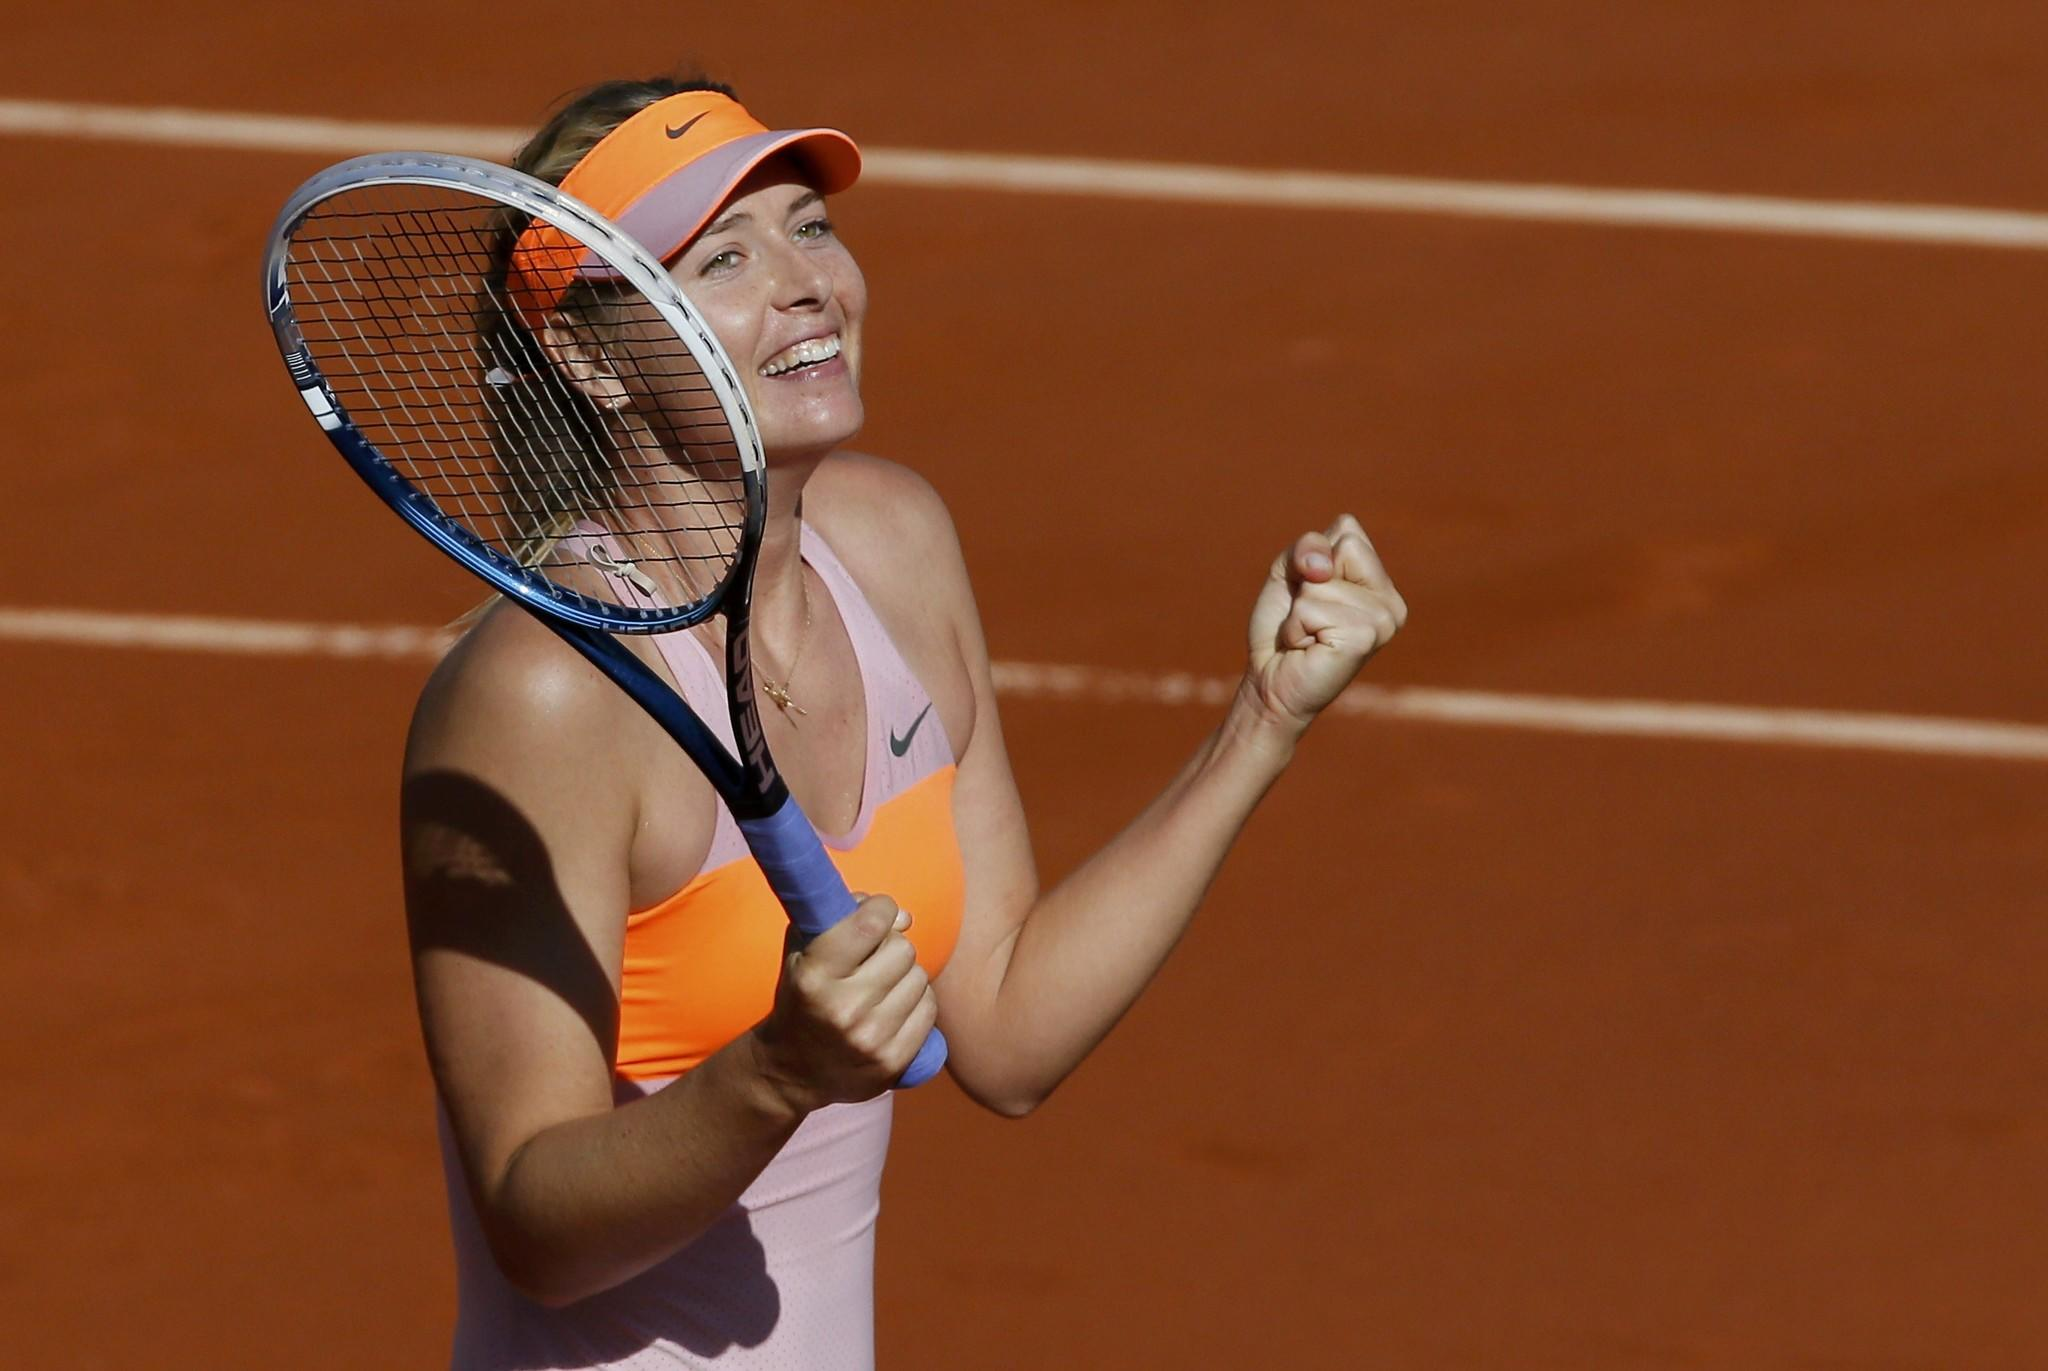 Maria Sharapova of Russia reacts after winning her women's semifinal match against Eugenie Bouchard of Canada at the French Open.